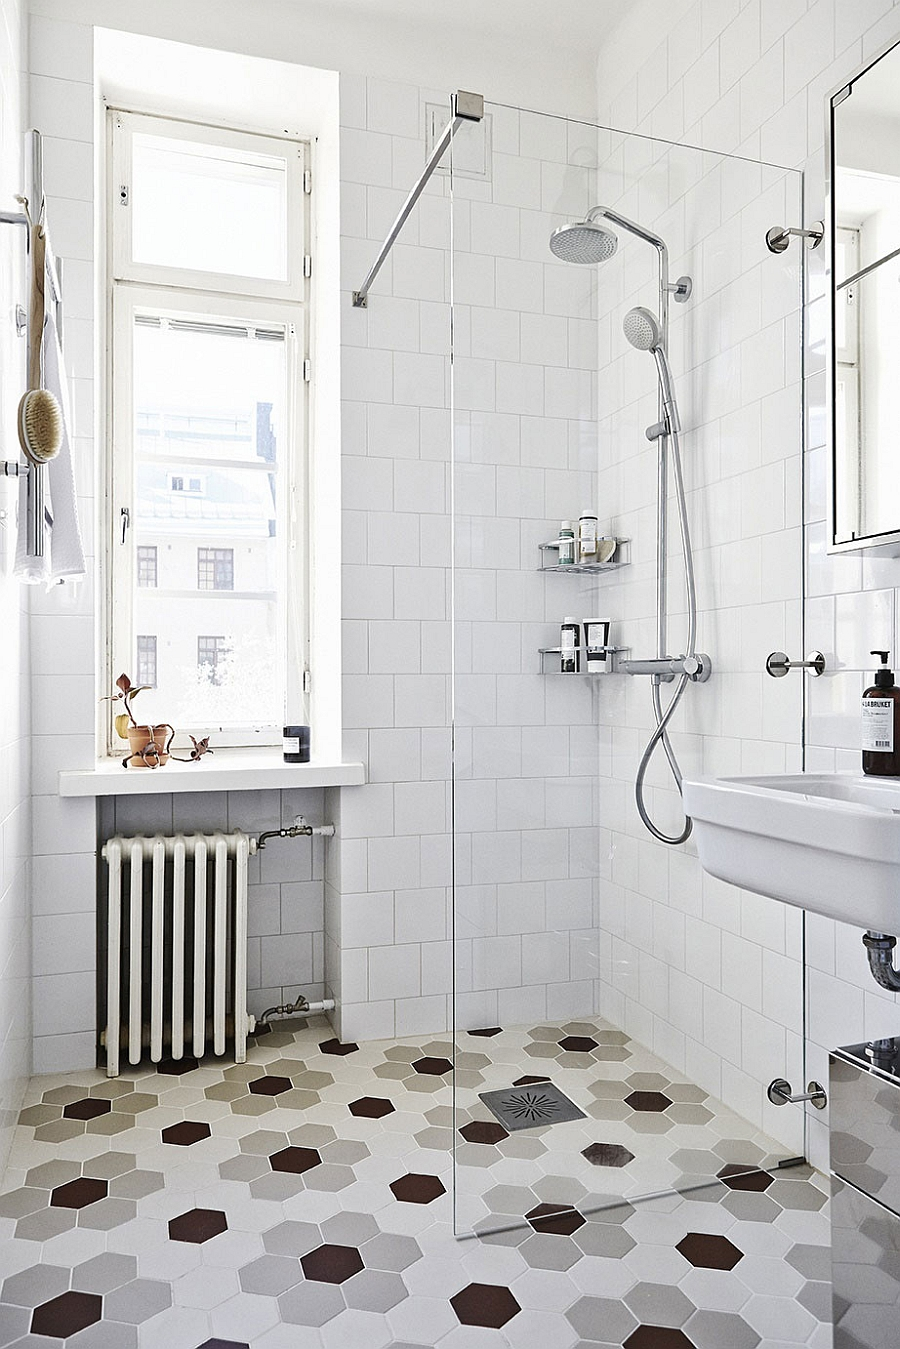 Scandinavian bathroom design with hexagonal floor tiles